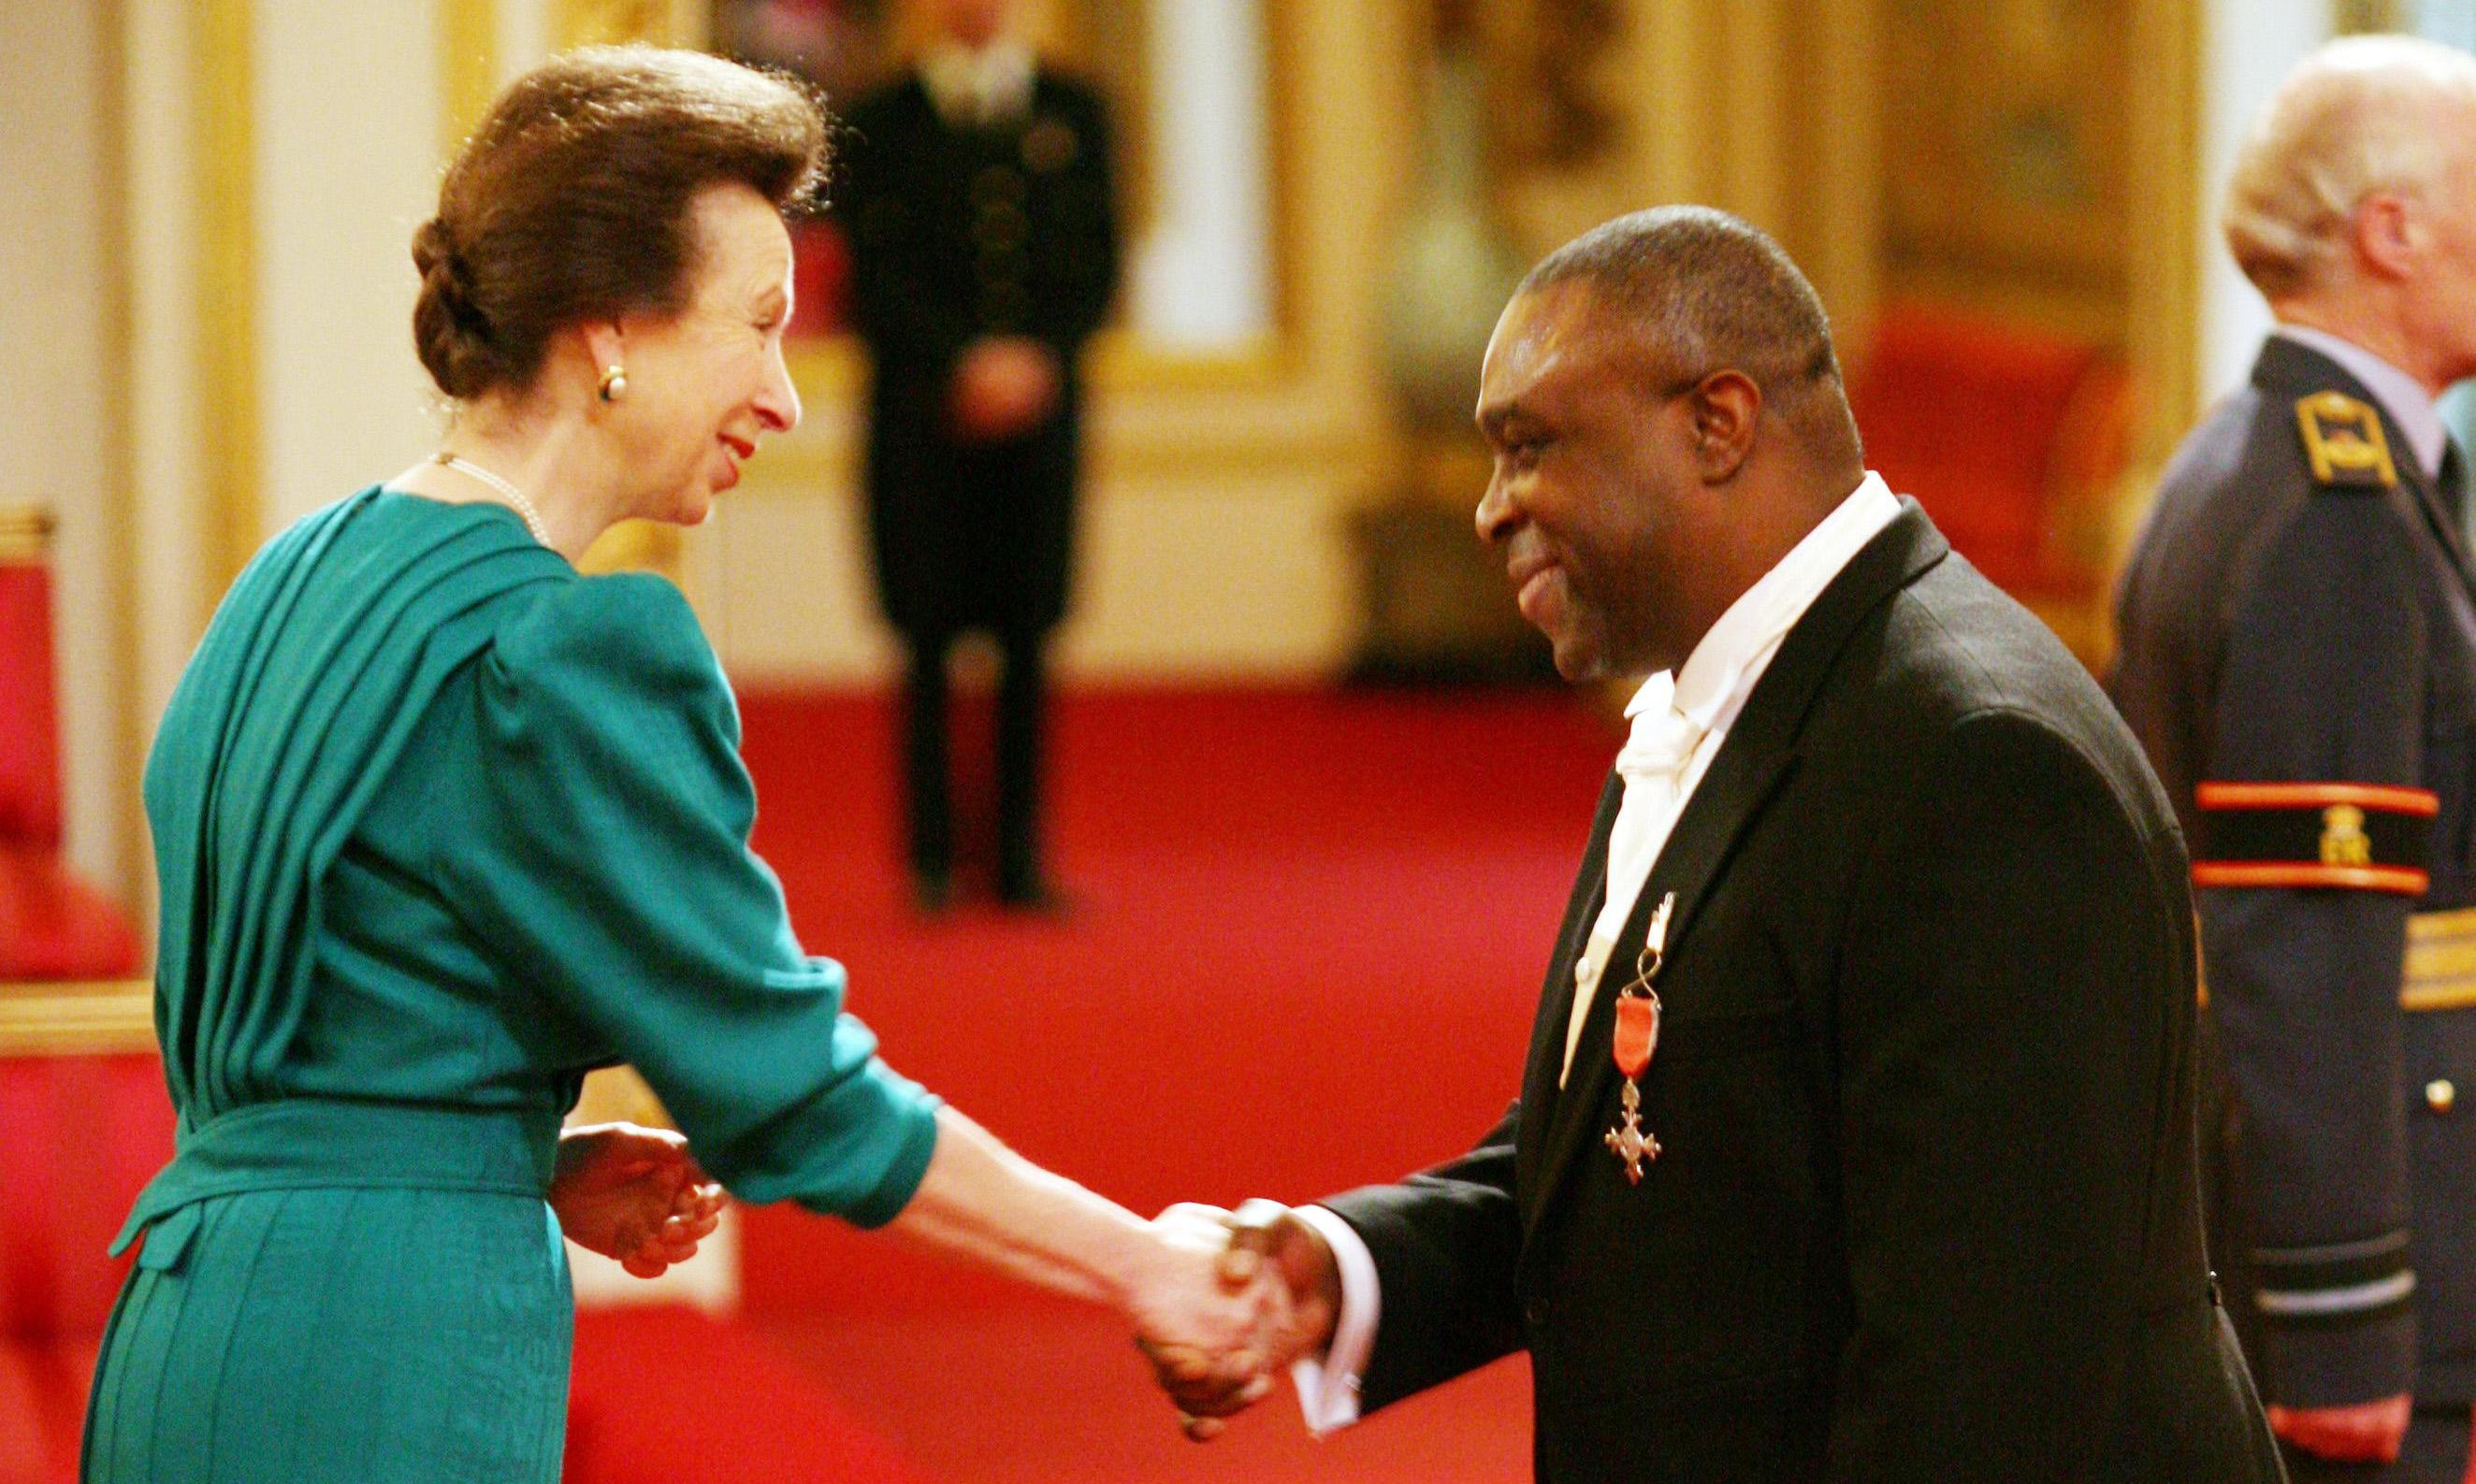 A British honours system rooted in empire is not fit for purpose